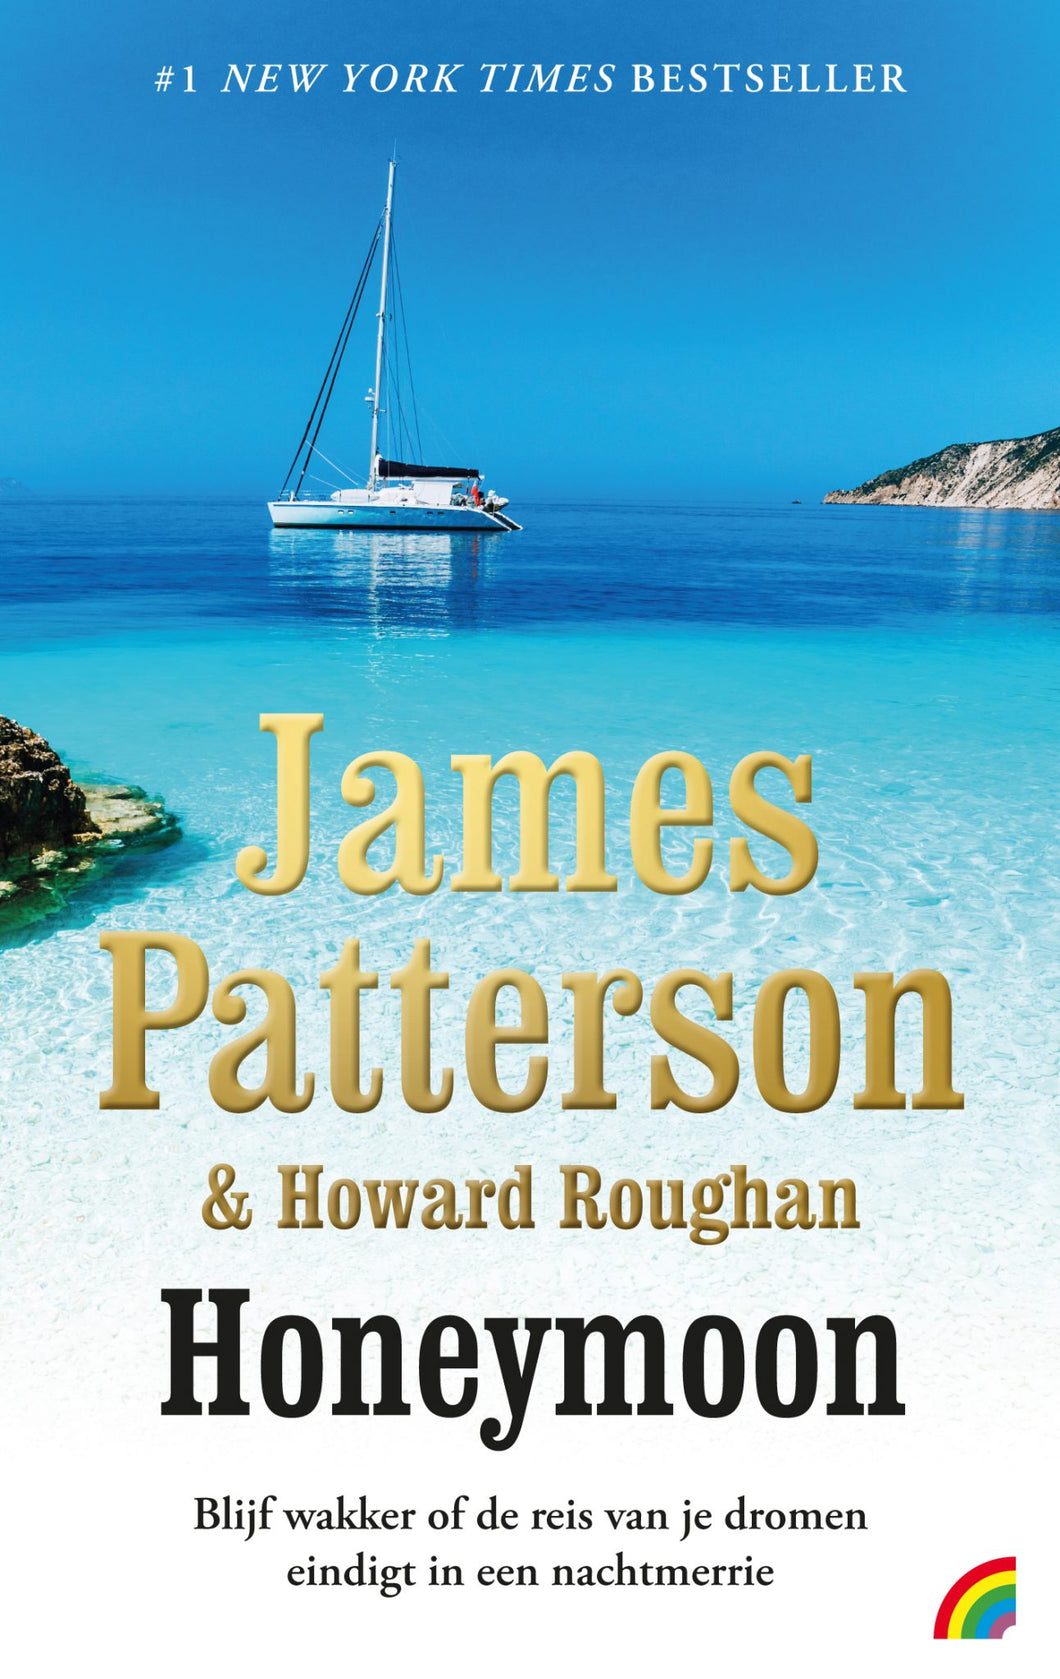 Honeymoon - James Patterson & Howard Roughan - Boekenmarkt de Markies